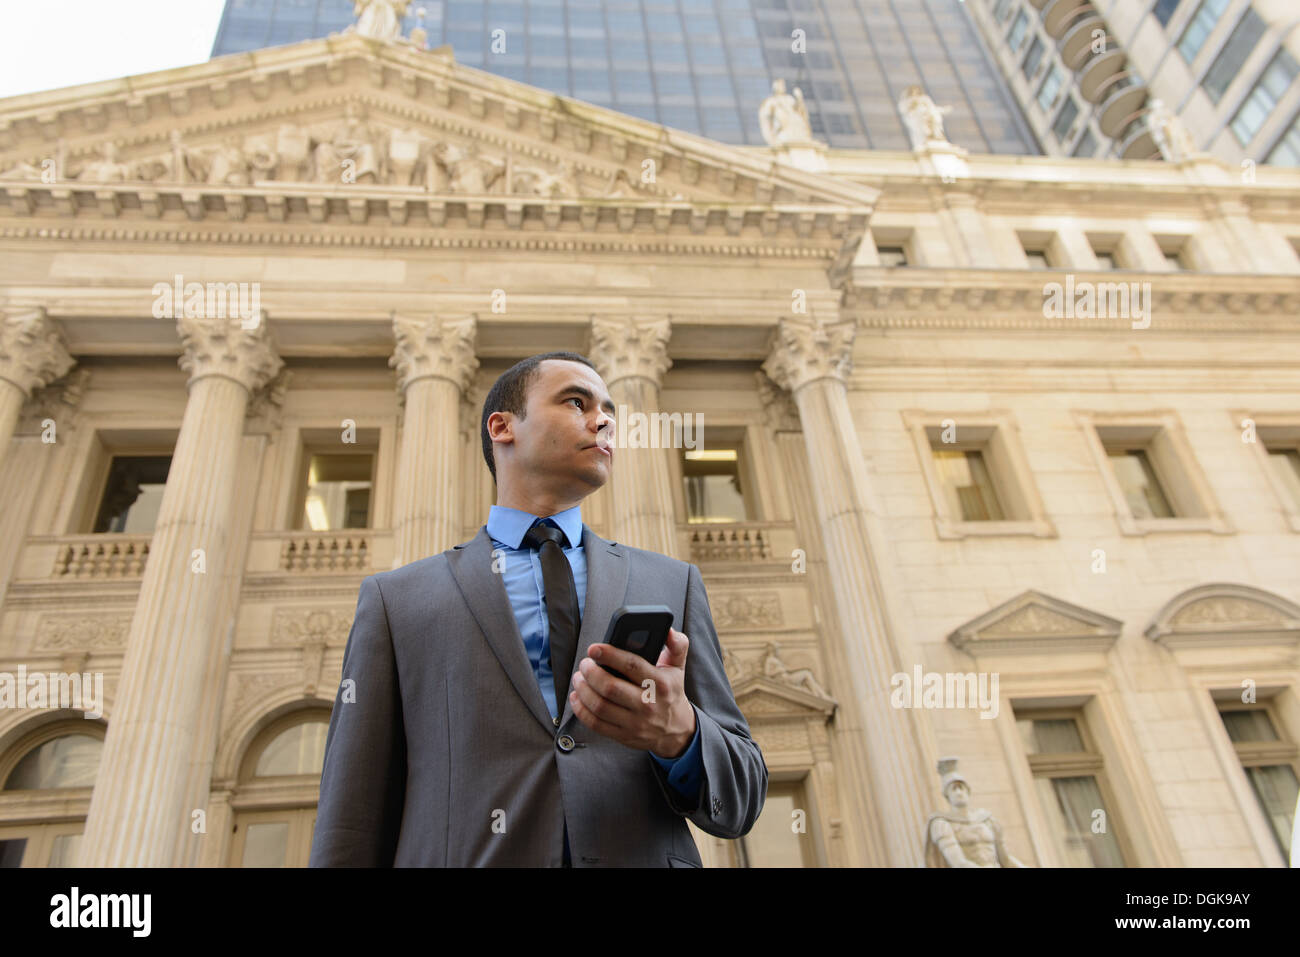 Businessman in front of New York State Courthouse - Stock Image